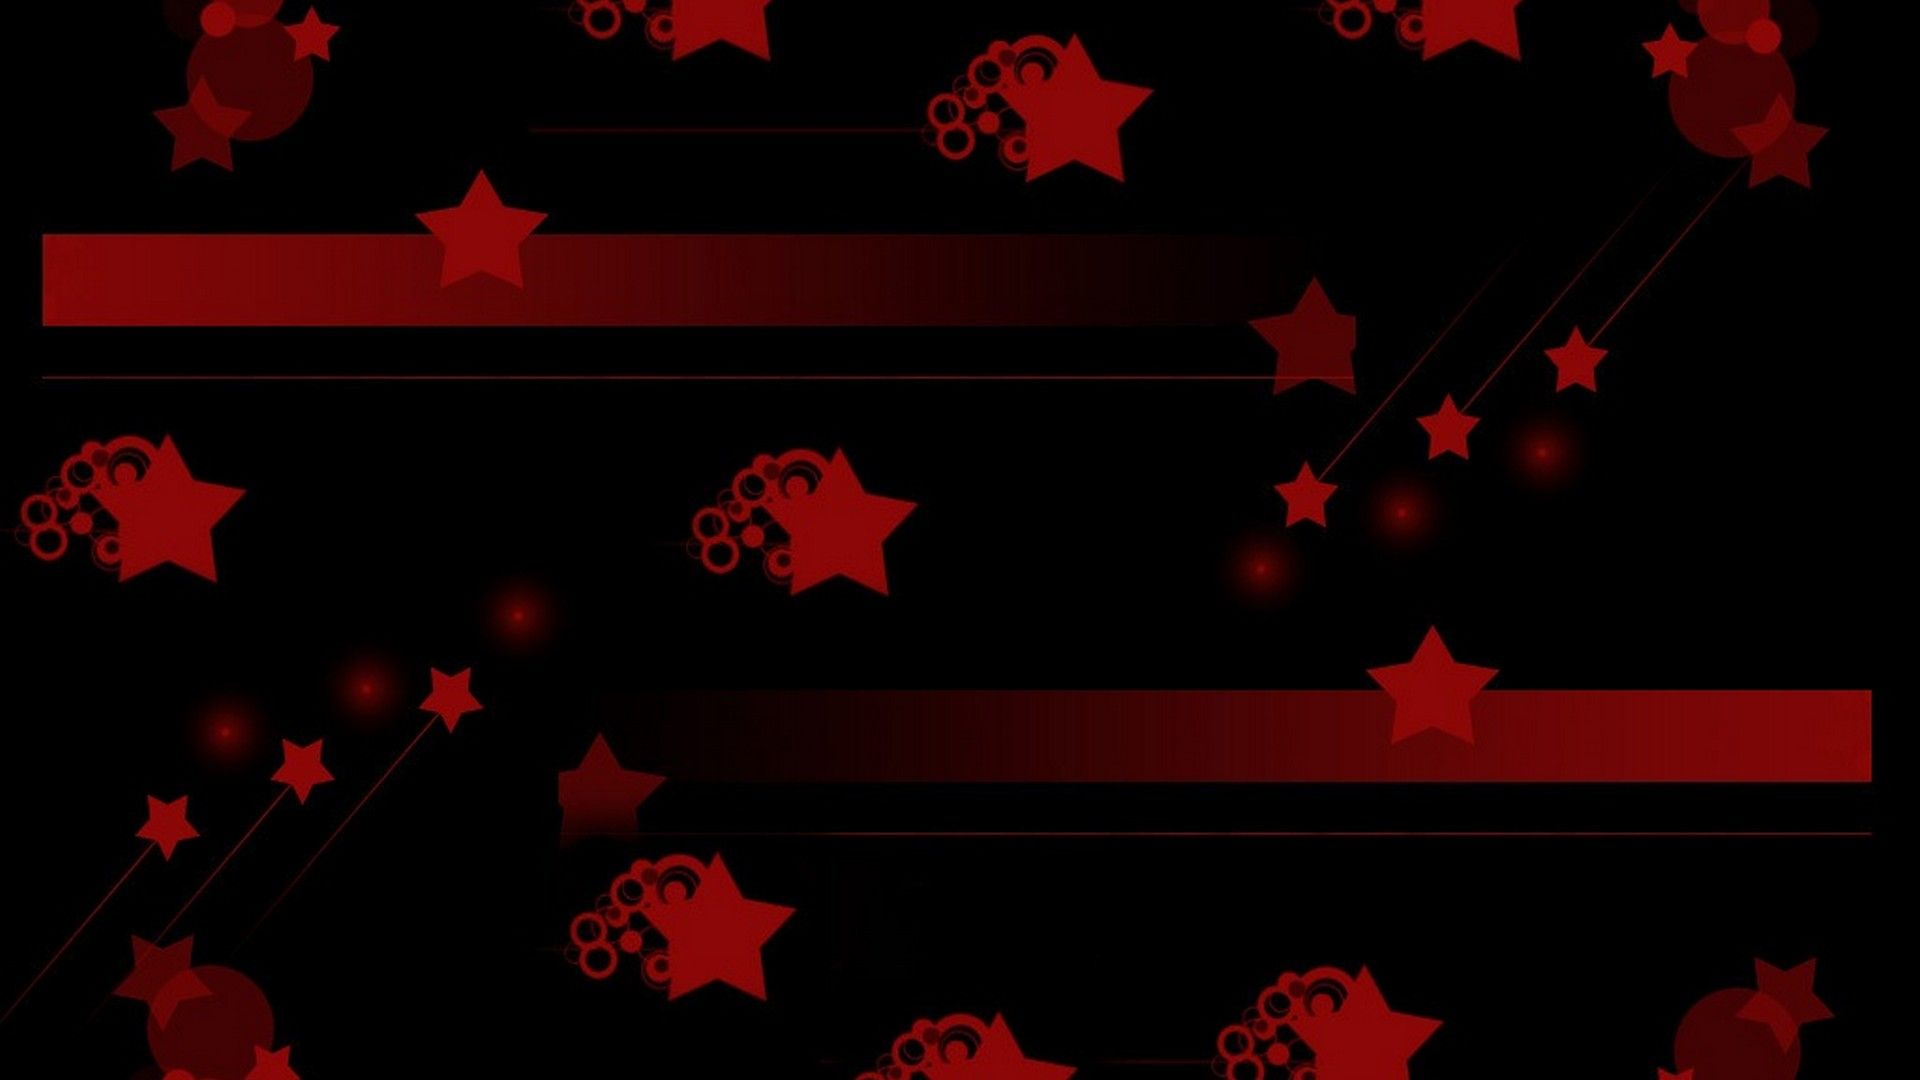 Red And Black Stars Wallpaper 2021 Live Wallpaper Hd Star Wallpaper Wallpaper Live Wallpapers